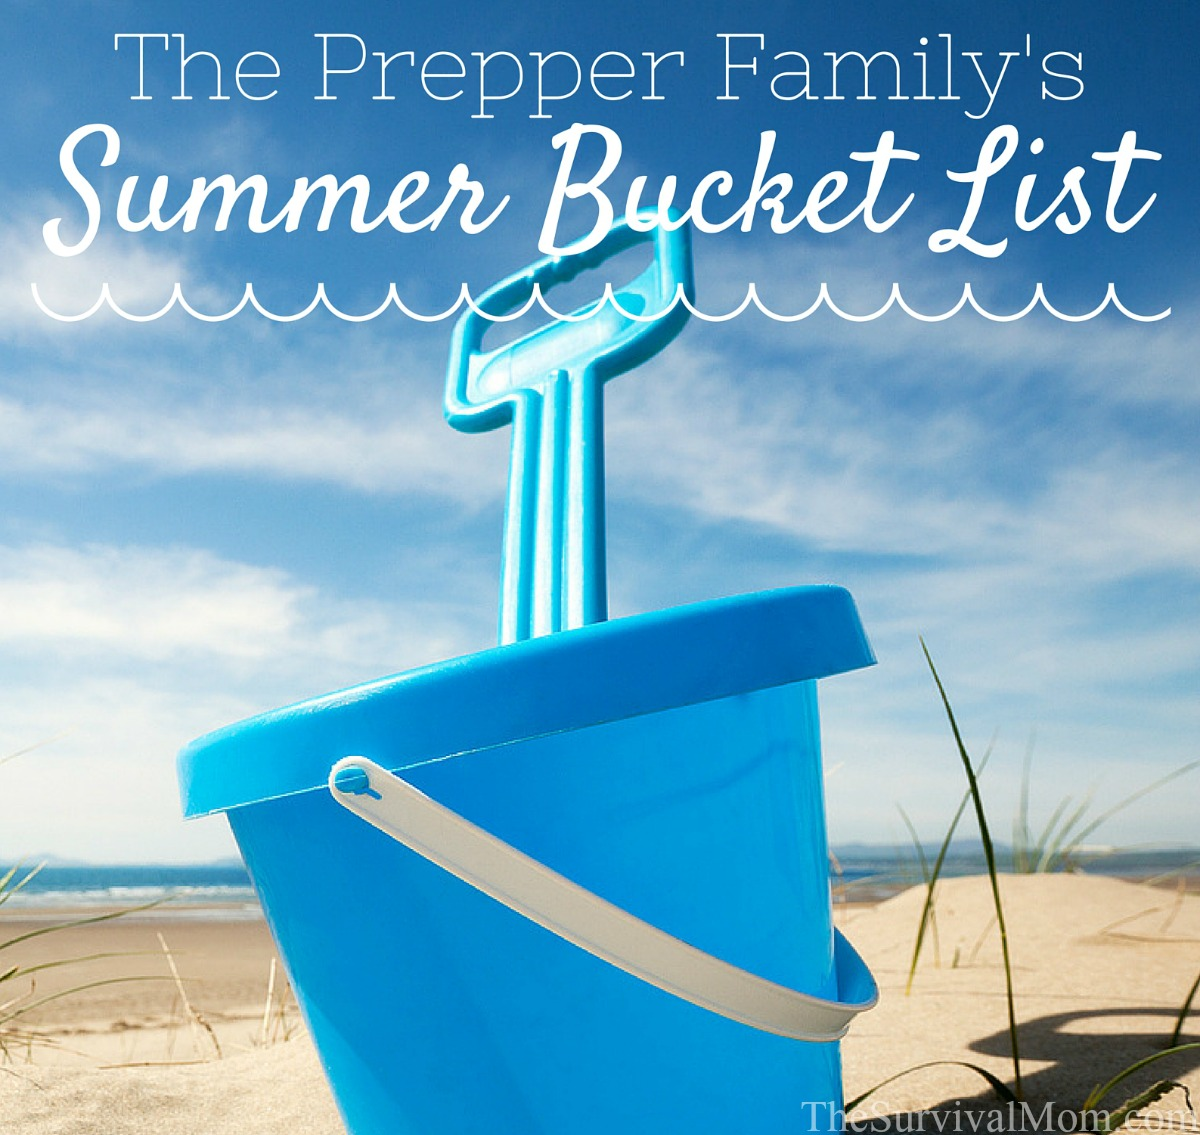 The Prepper Family's Summer Bucket List via The Survival Mom